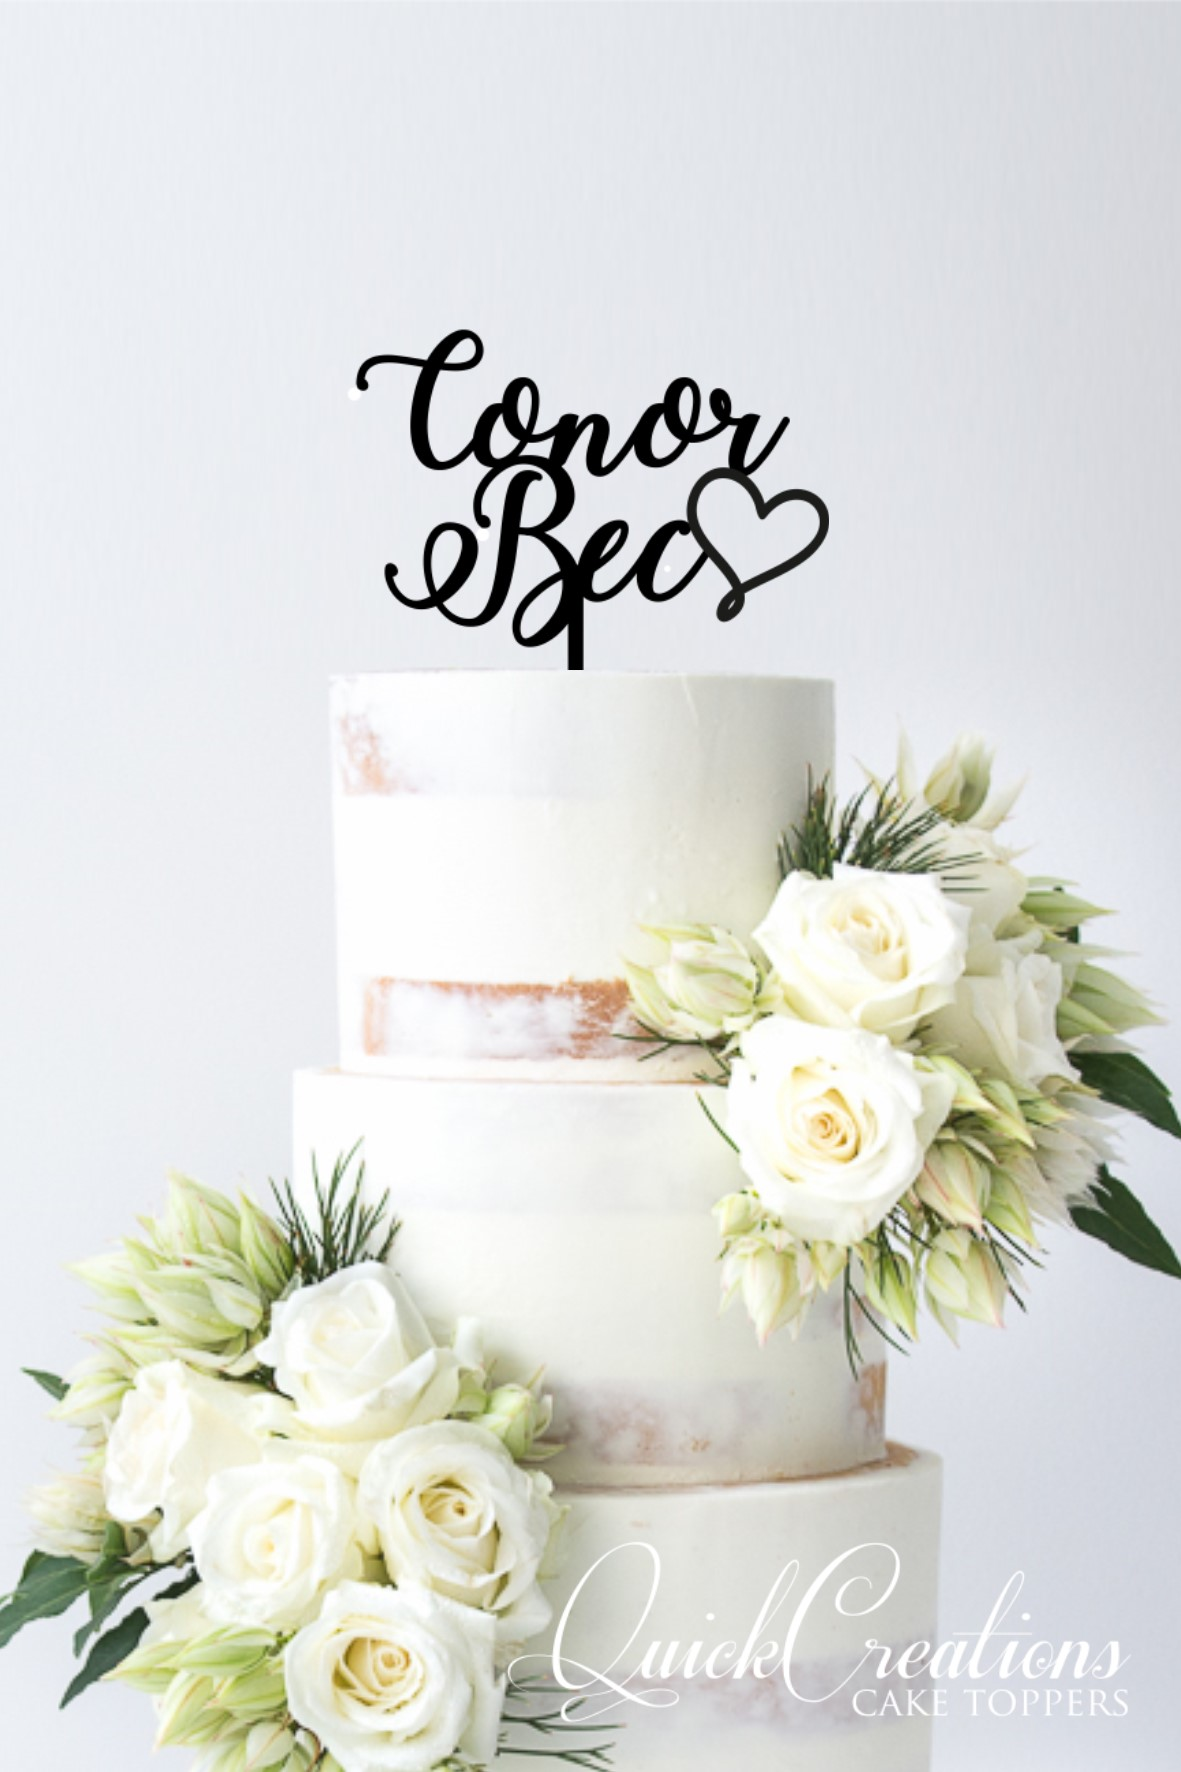 Quick Creations Cake Topper - Conor Heart Bec